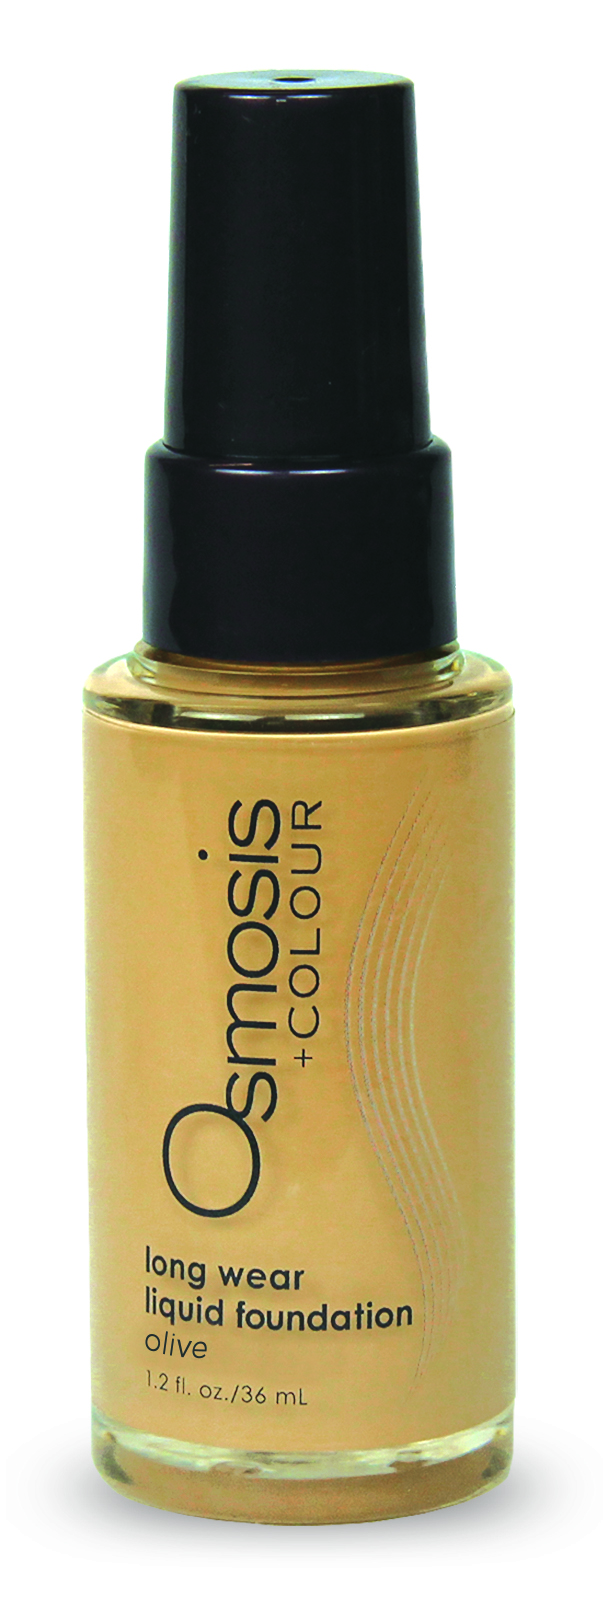 Osmosis Long Wear Liquid Foundation Olive $93